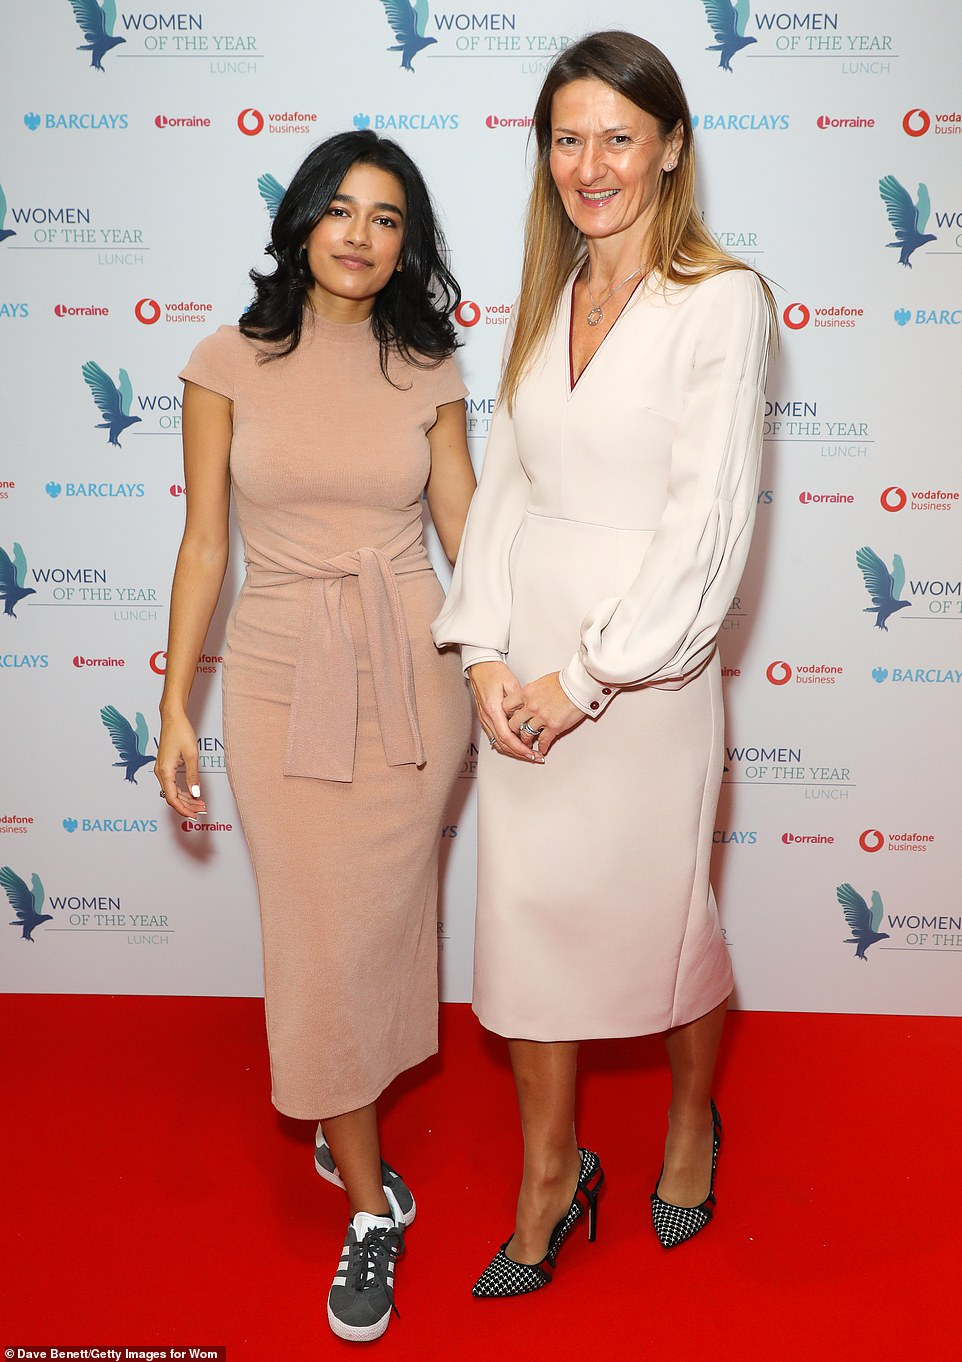 Side by side:Mursal Hedayat and Lisa Francis attend the Women of the Year Lunch & Awards on Monday afternoon